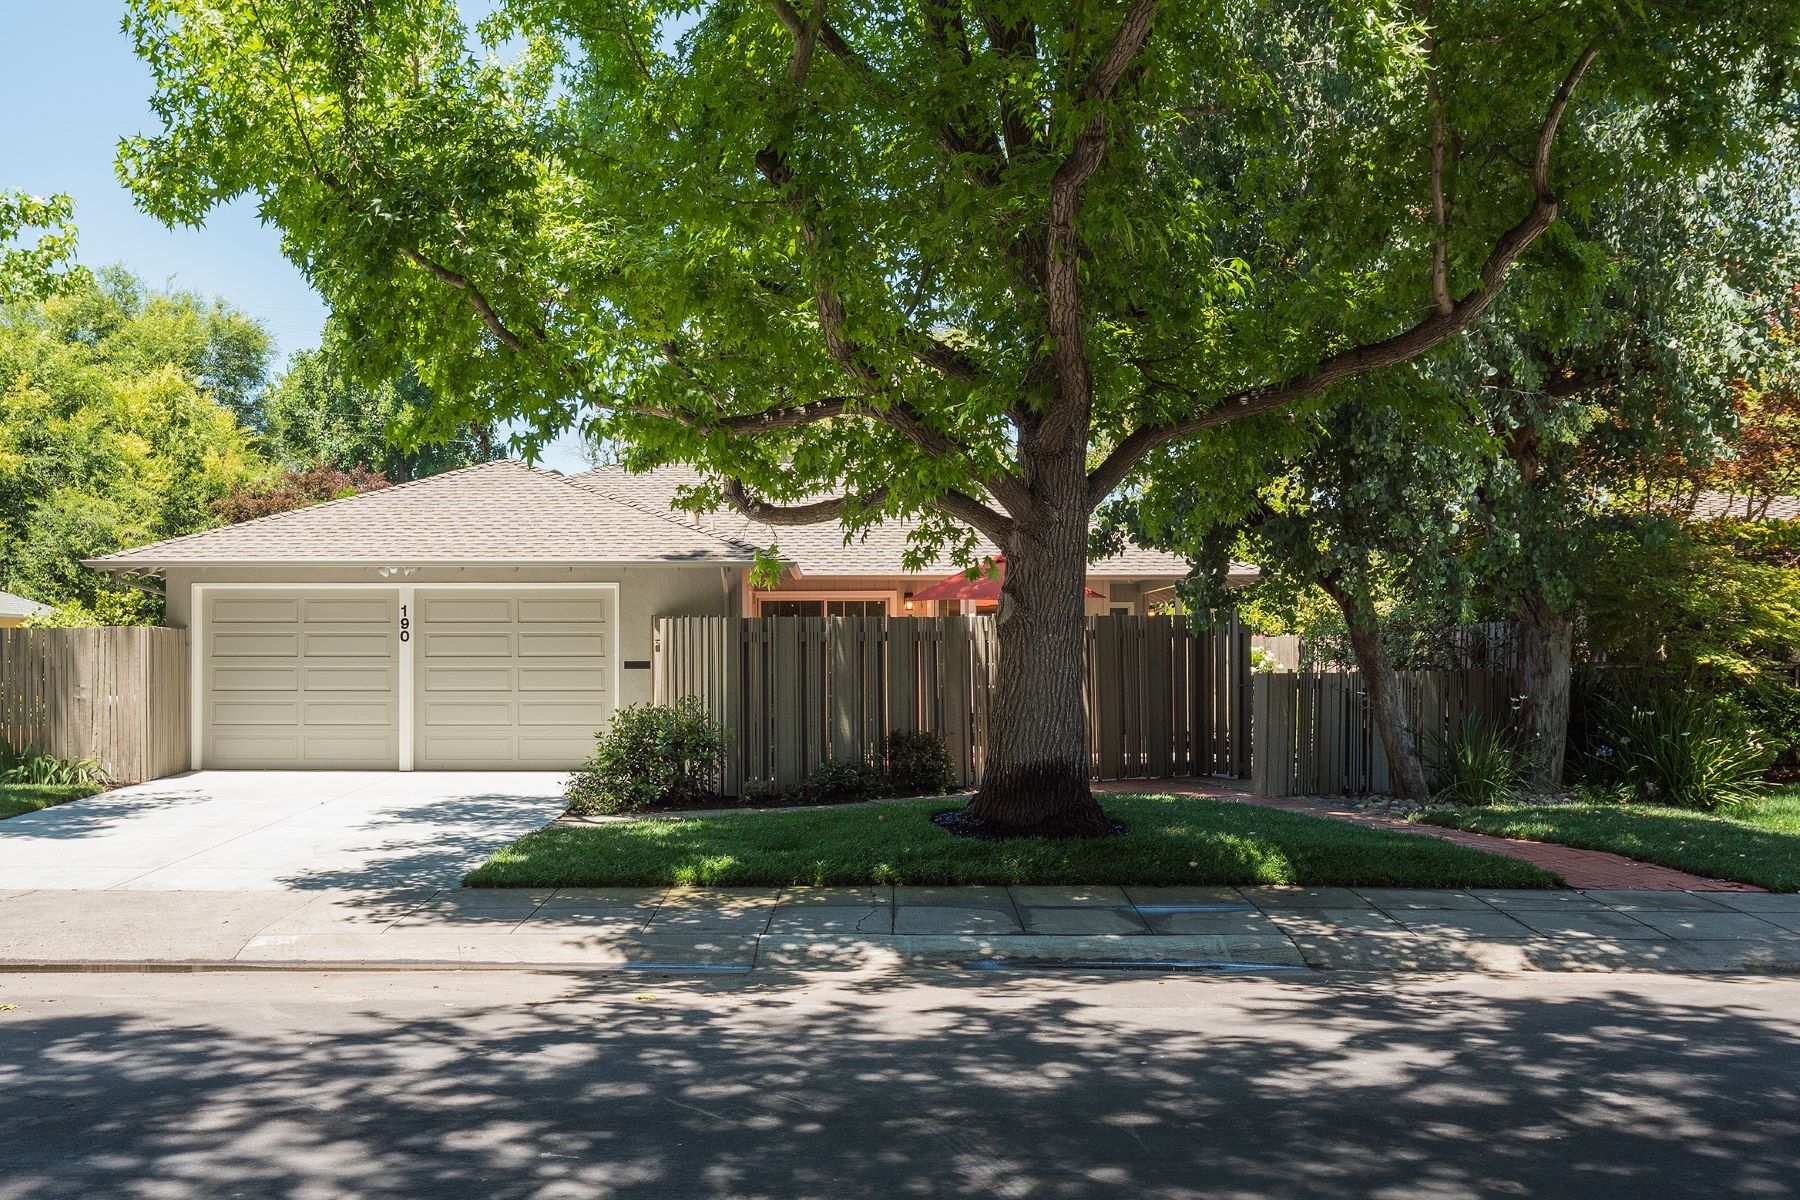 Single Family Home for Sale at 190 Walter Hays Dr Palo Alto, California 94303 United States